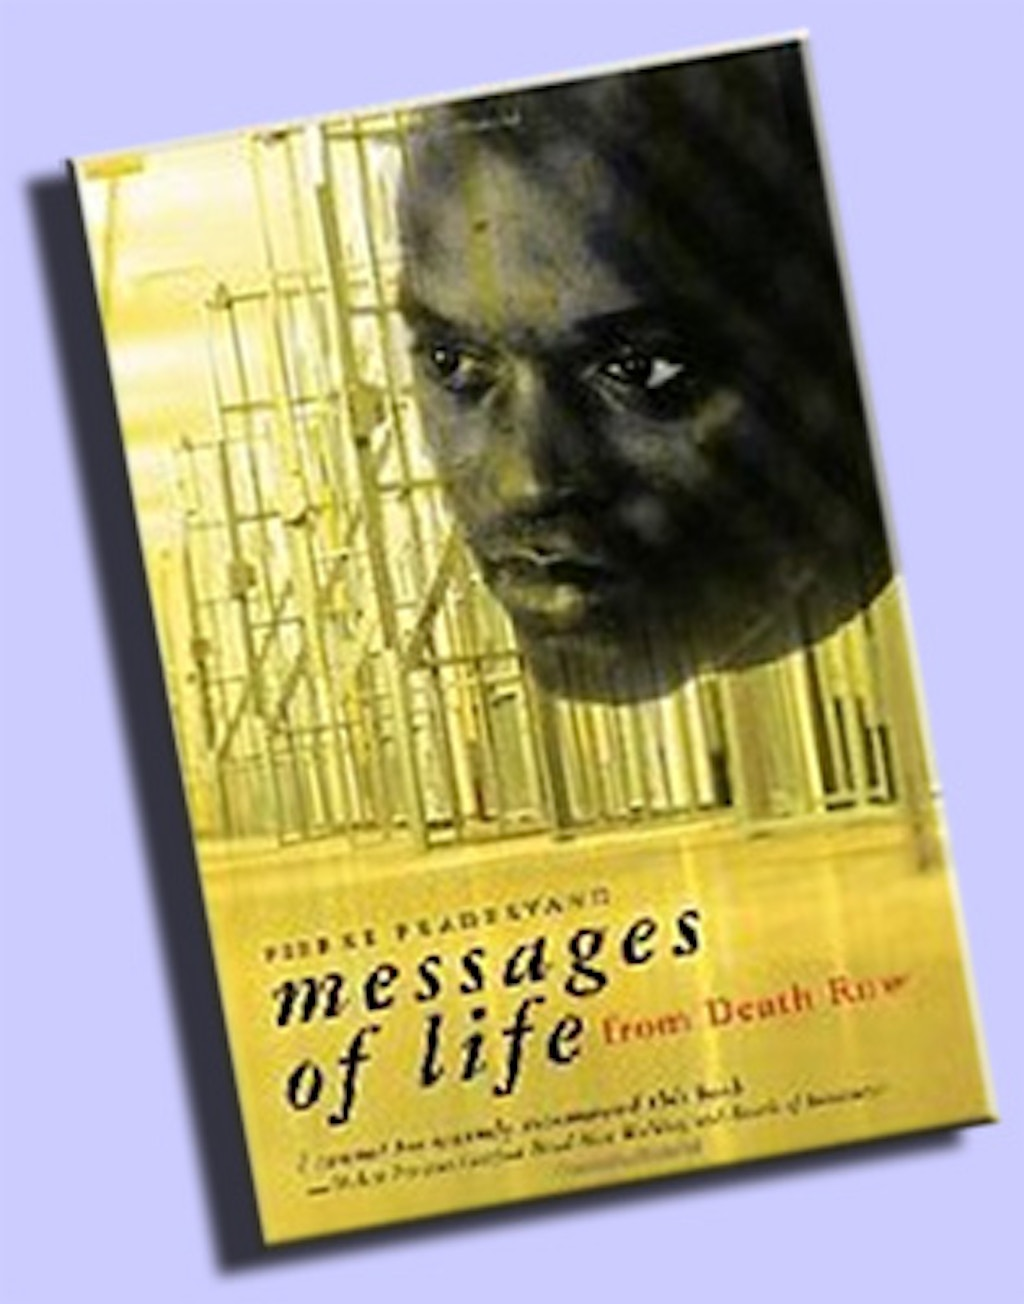 BOOKS: Messages of Life from Death Row